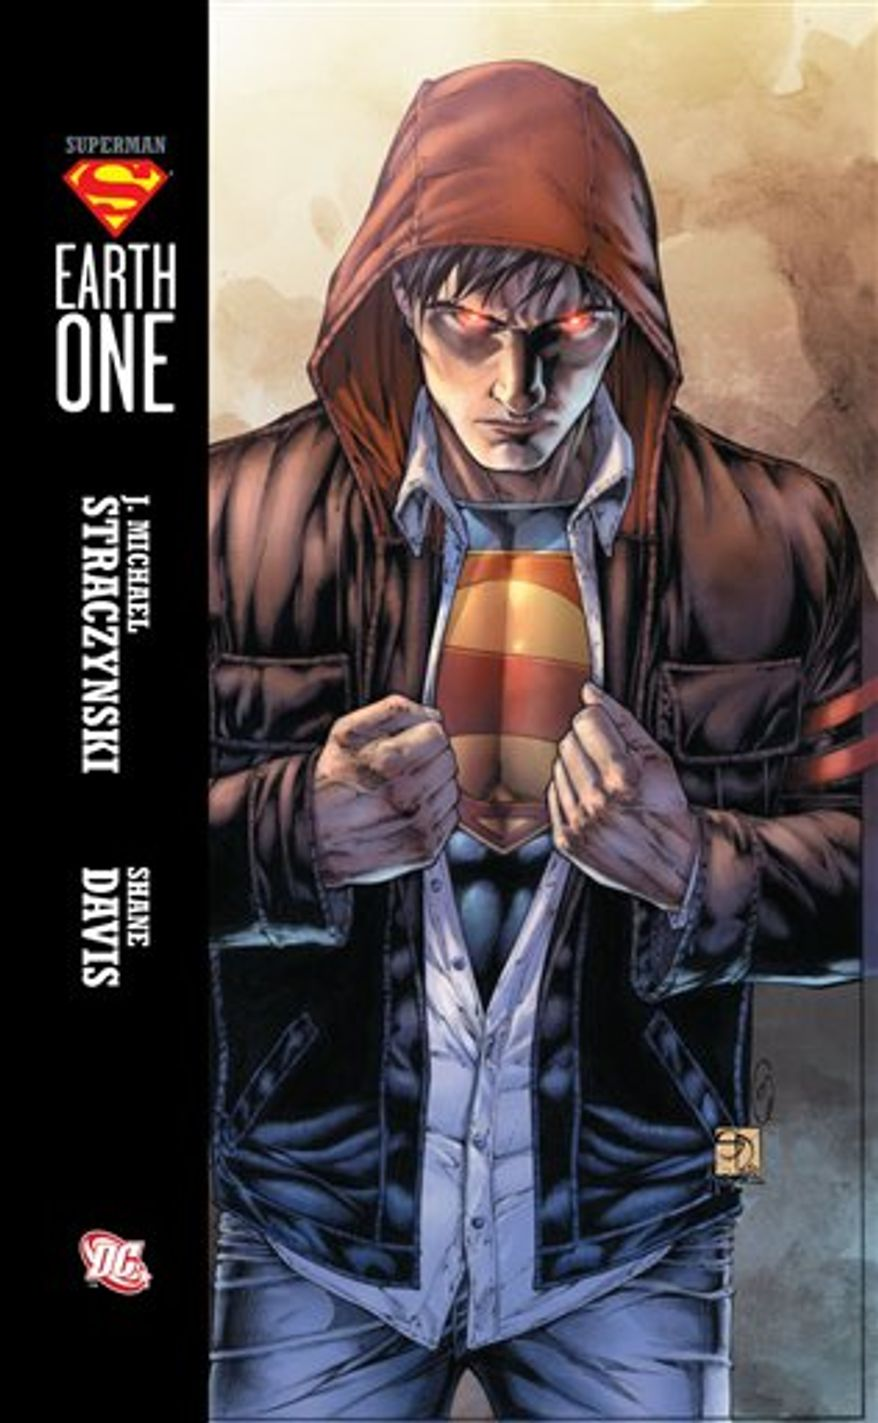 """In this publicity image released by DC Comics, the cover of """"Superman: Earth One,"""" is shown. (AP Photo/DC Comics)"""